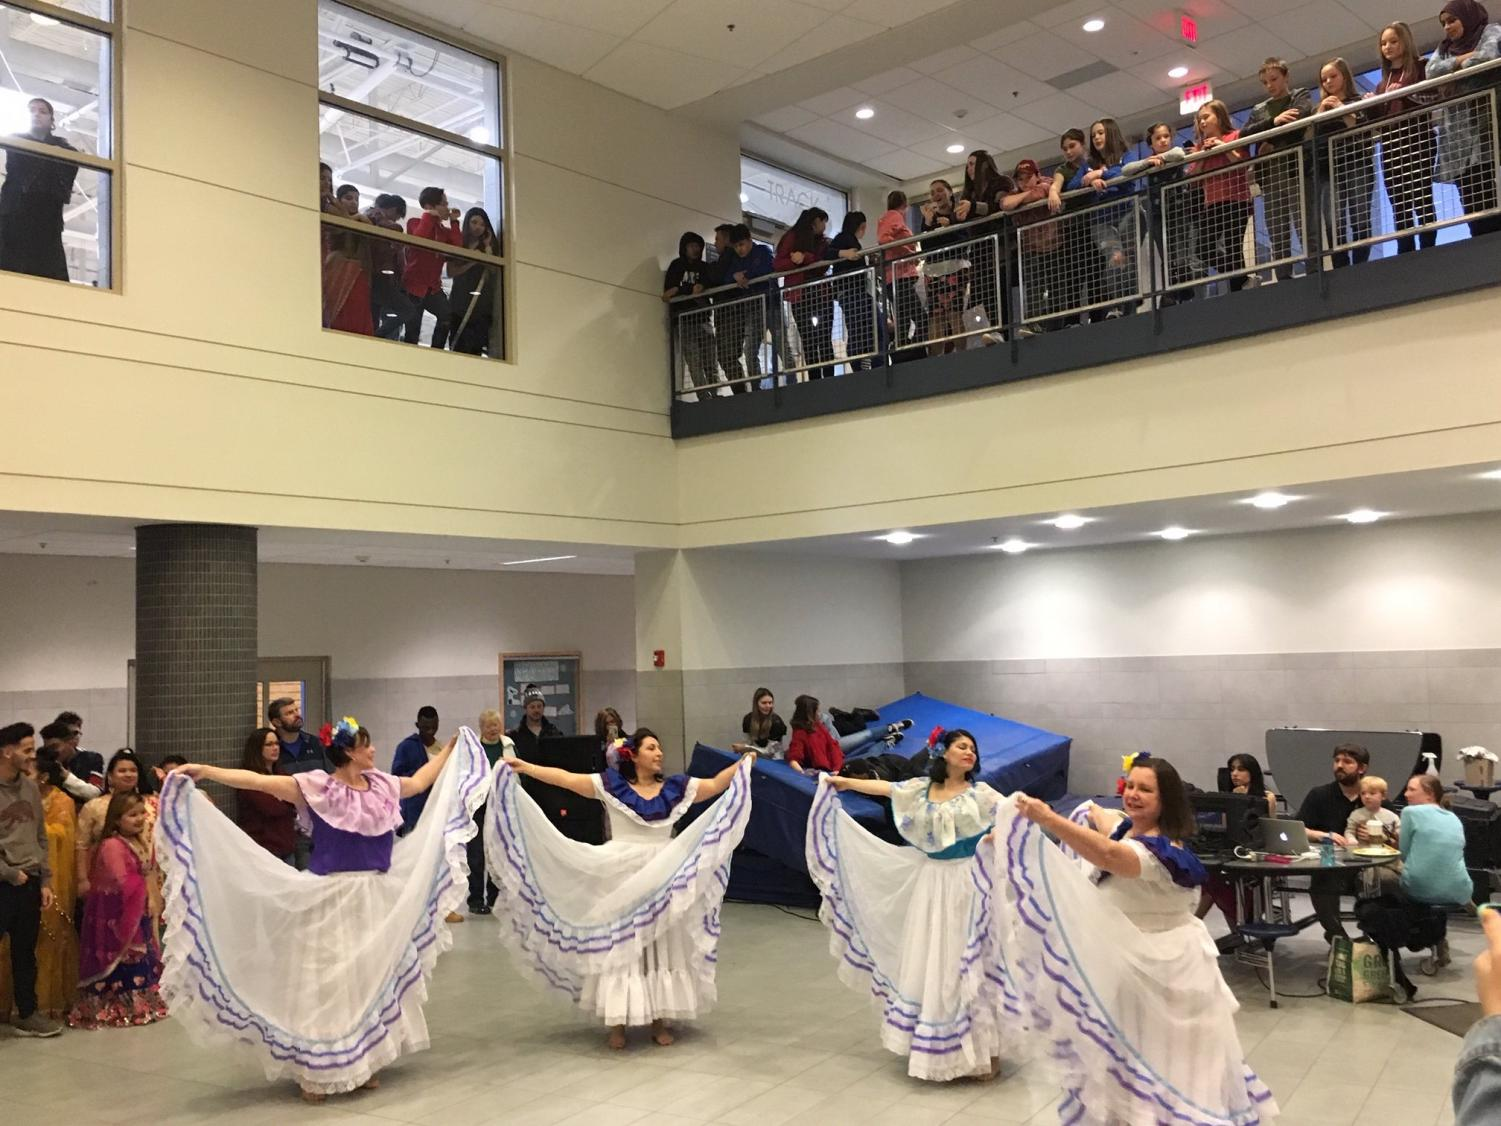 Performance by Grupo Folklorico Tradiciones